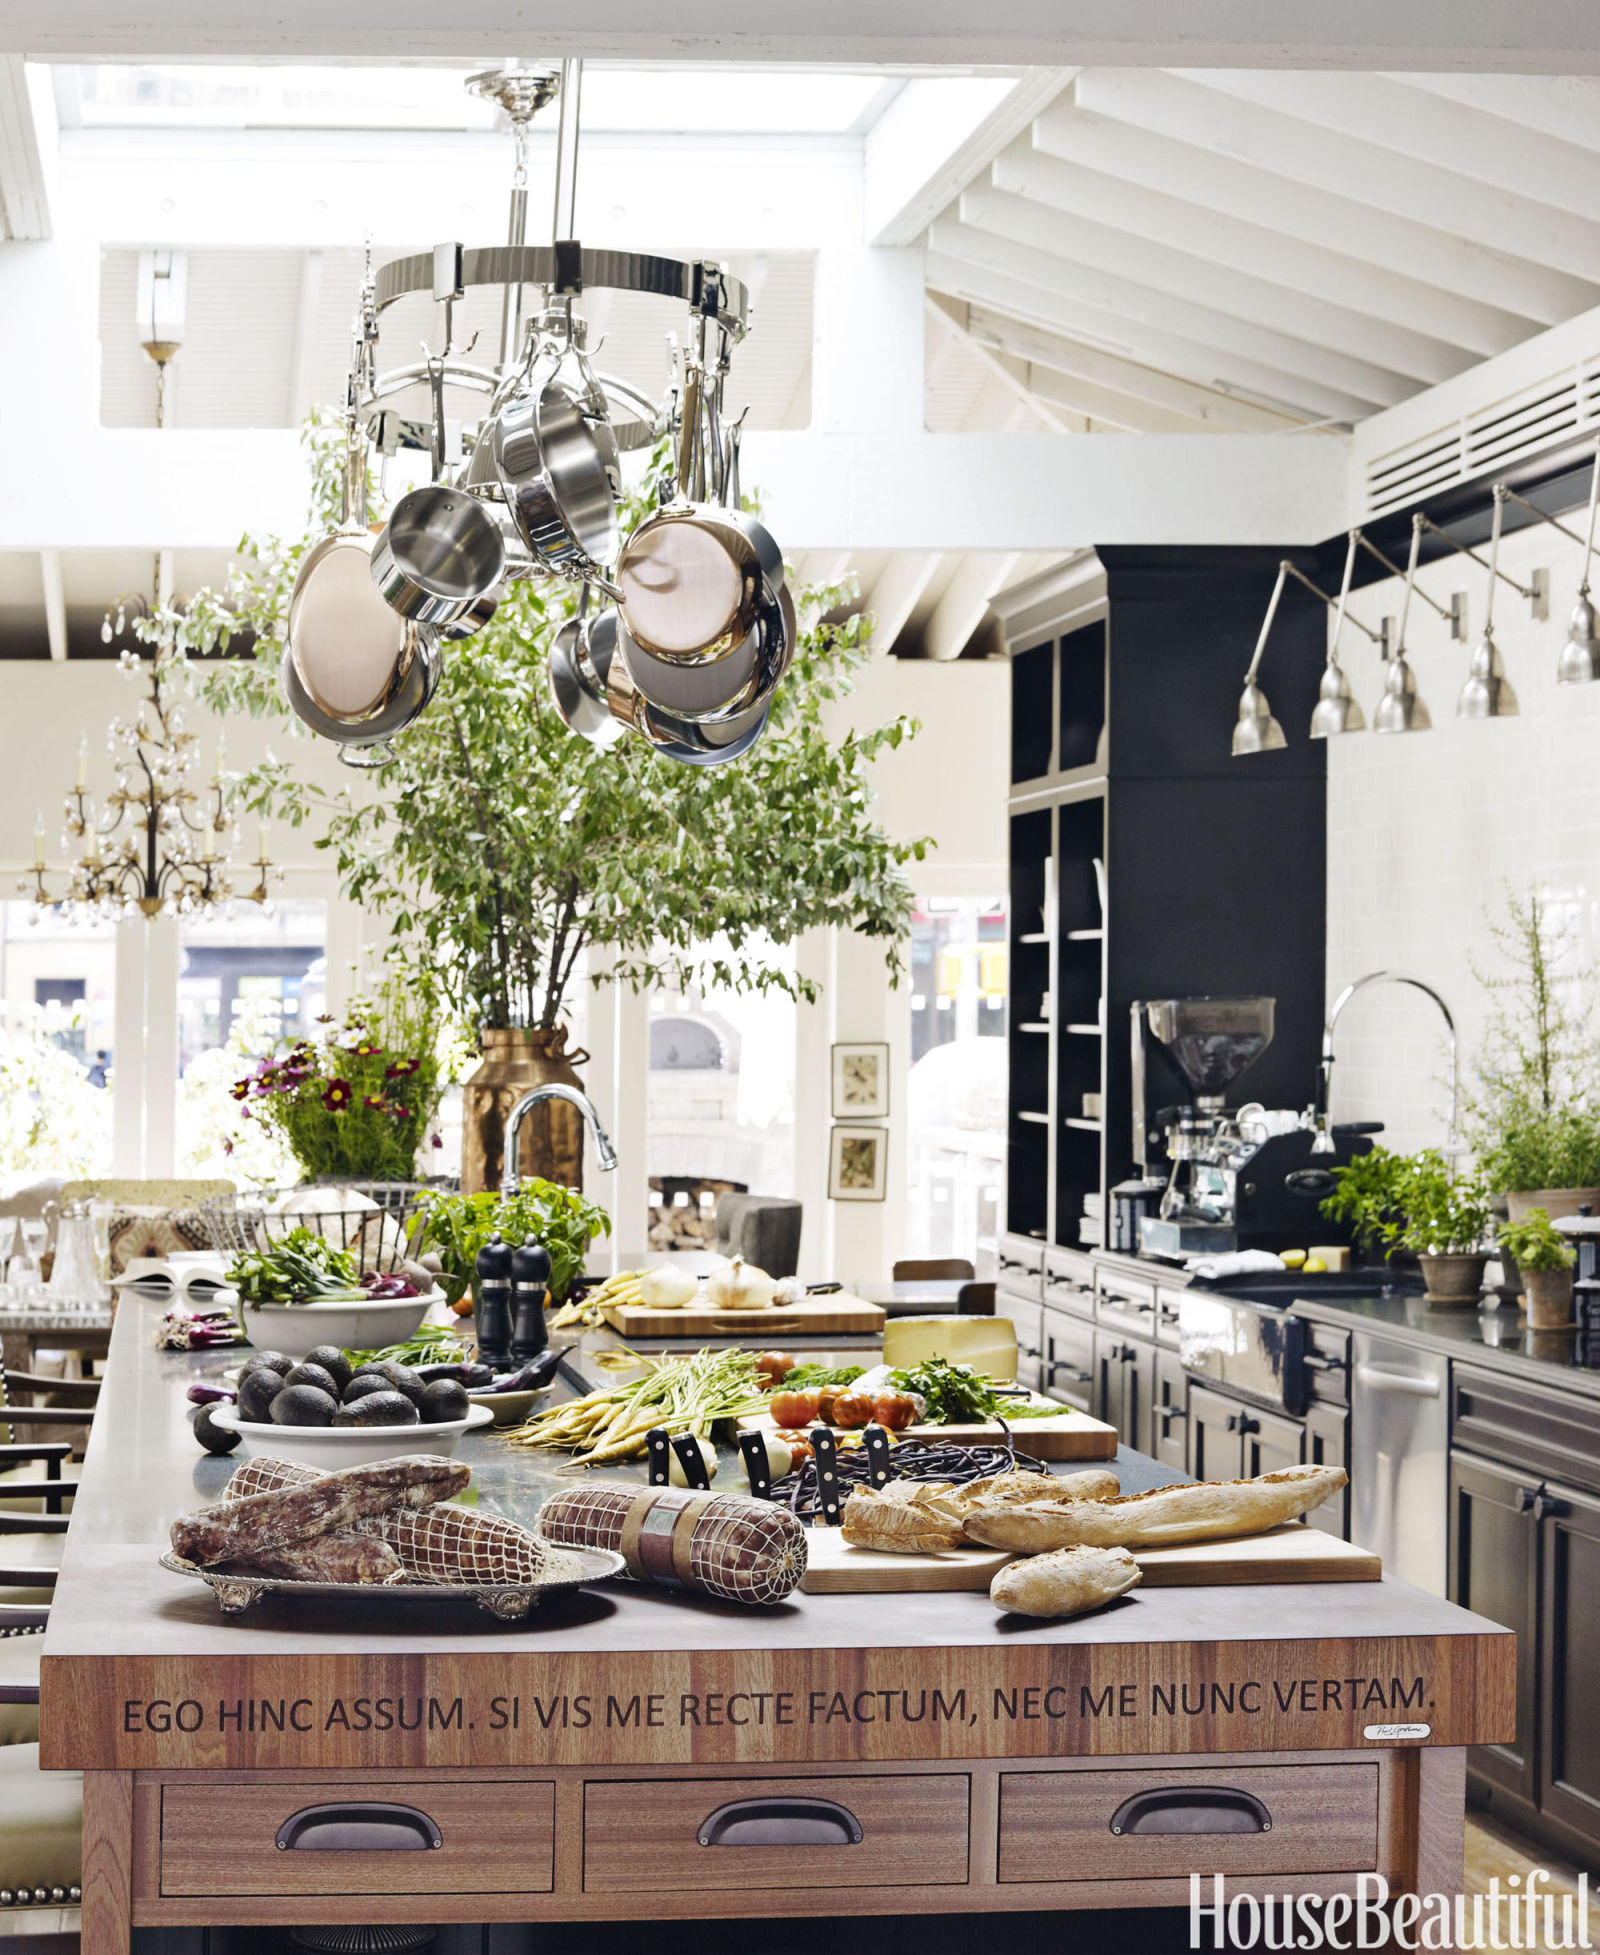 Take A Tour Of Our 2011 Kitchen The Year Created By Celebrity Chef Tyler Florence